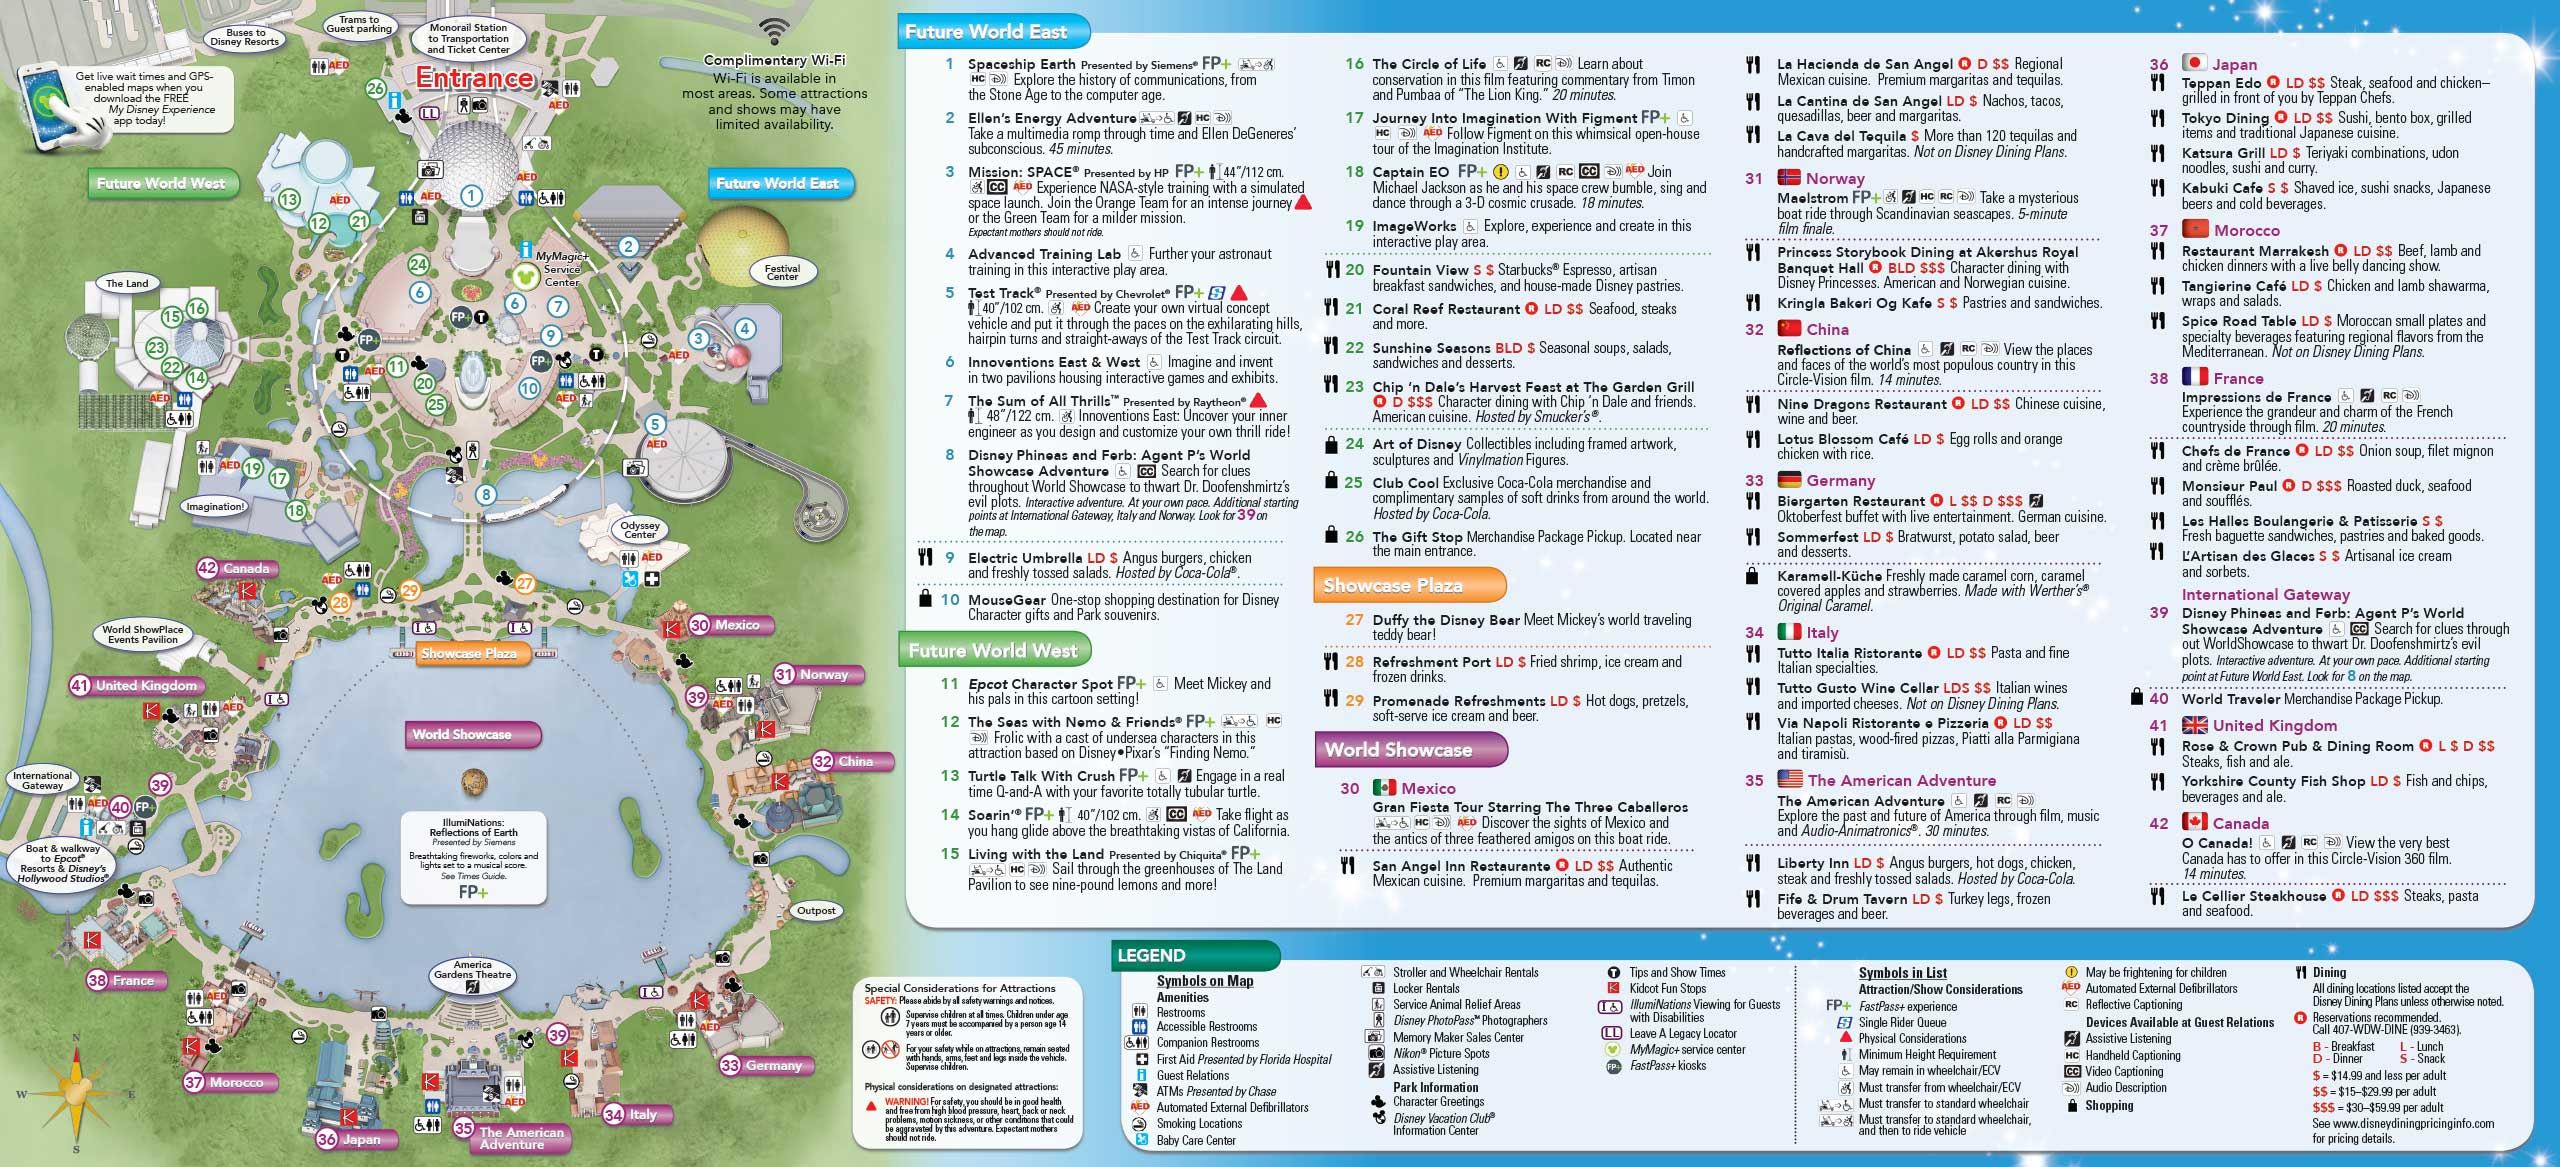 picture about Printable Epcot Map known as 2014 Walt Disney Worldwide Park Maps with FastP+ - Image 4 of 8